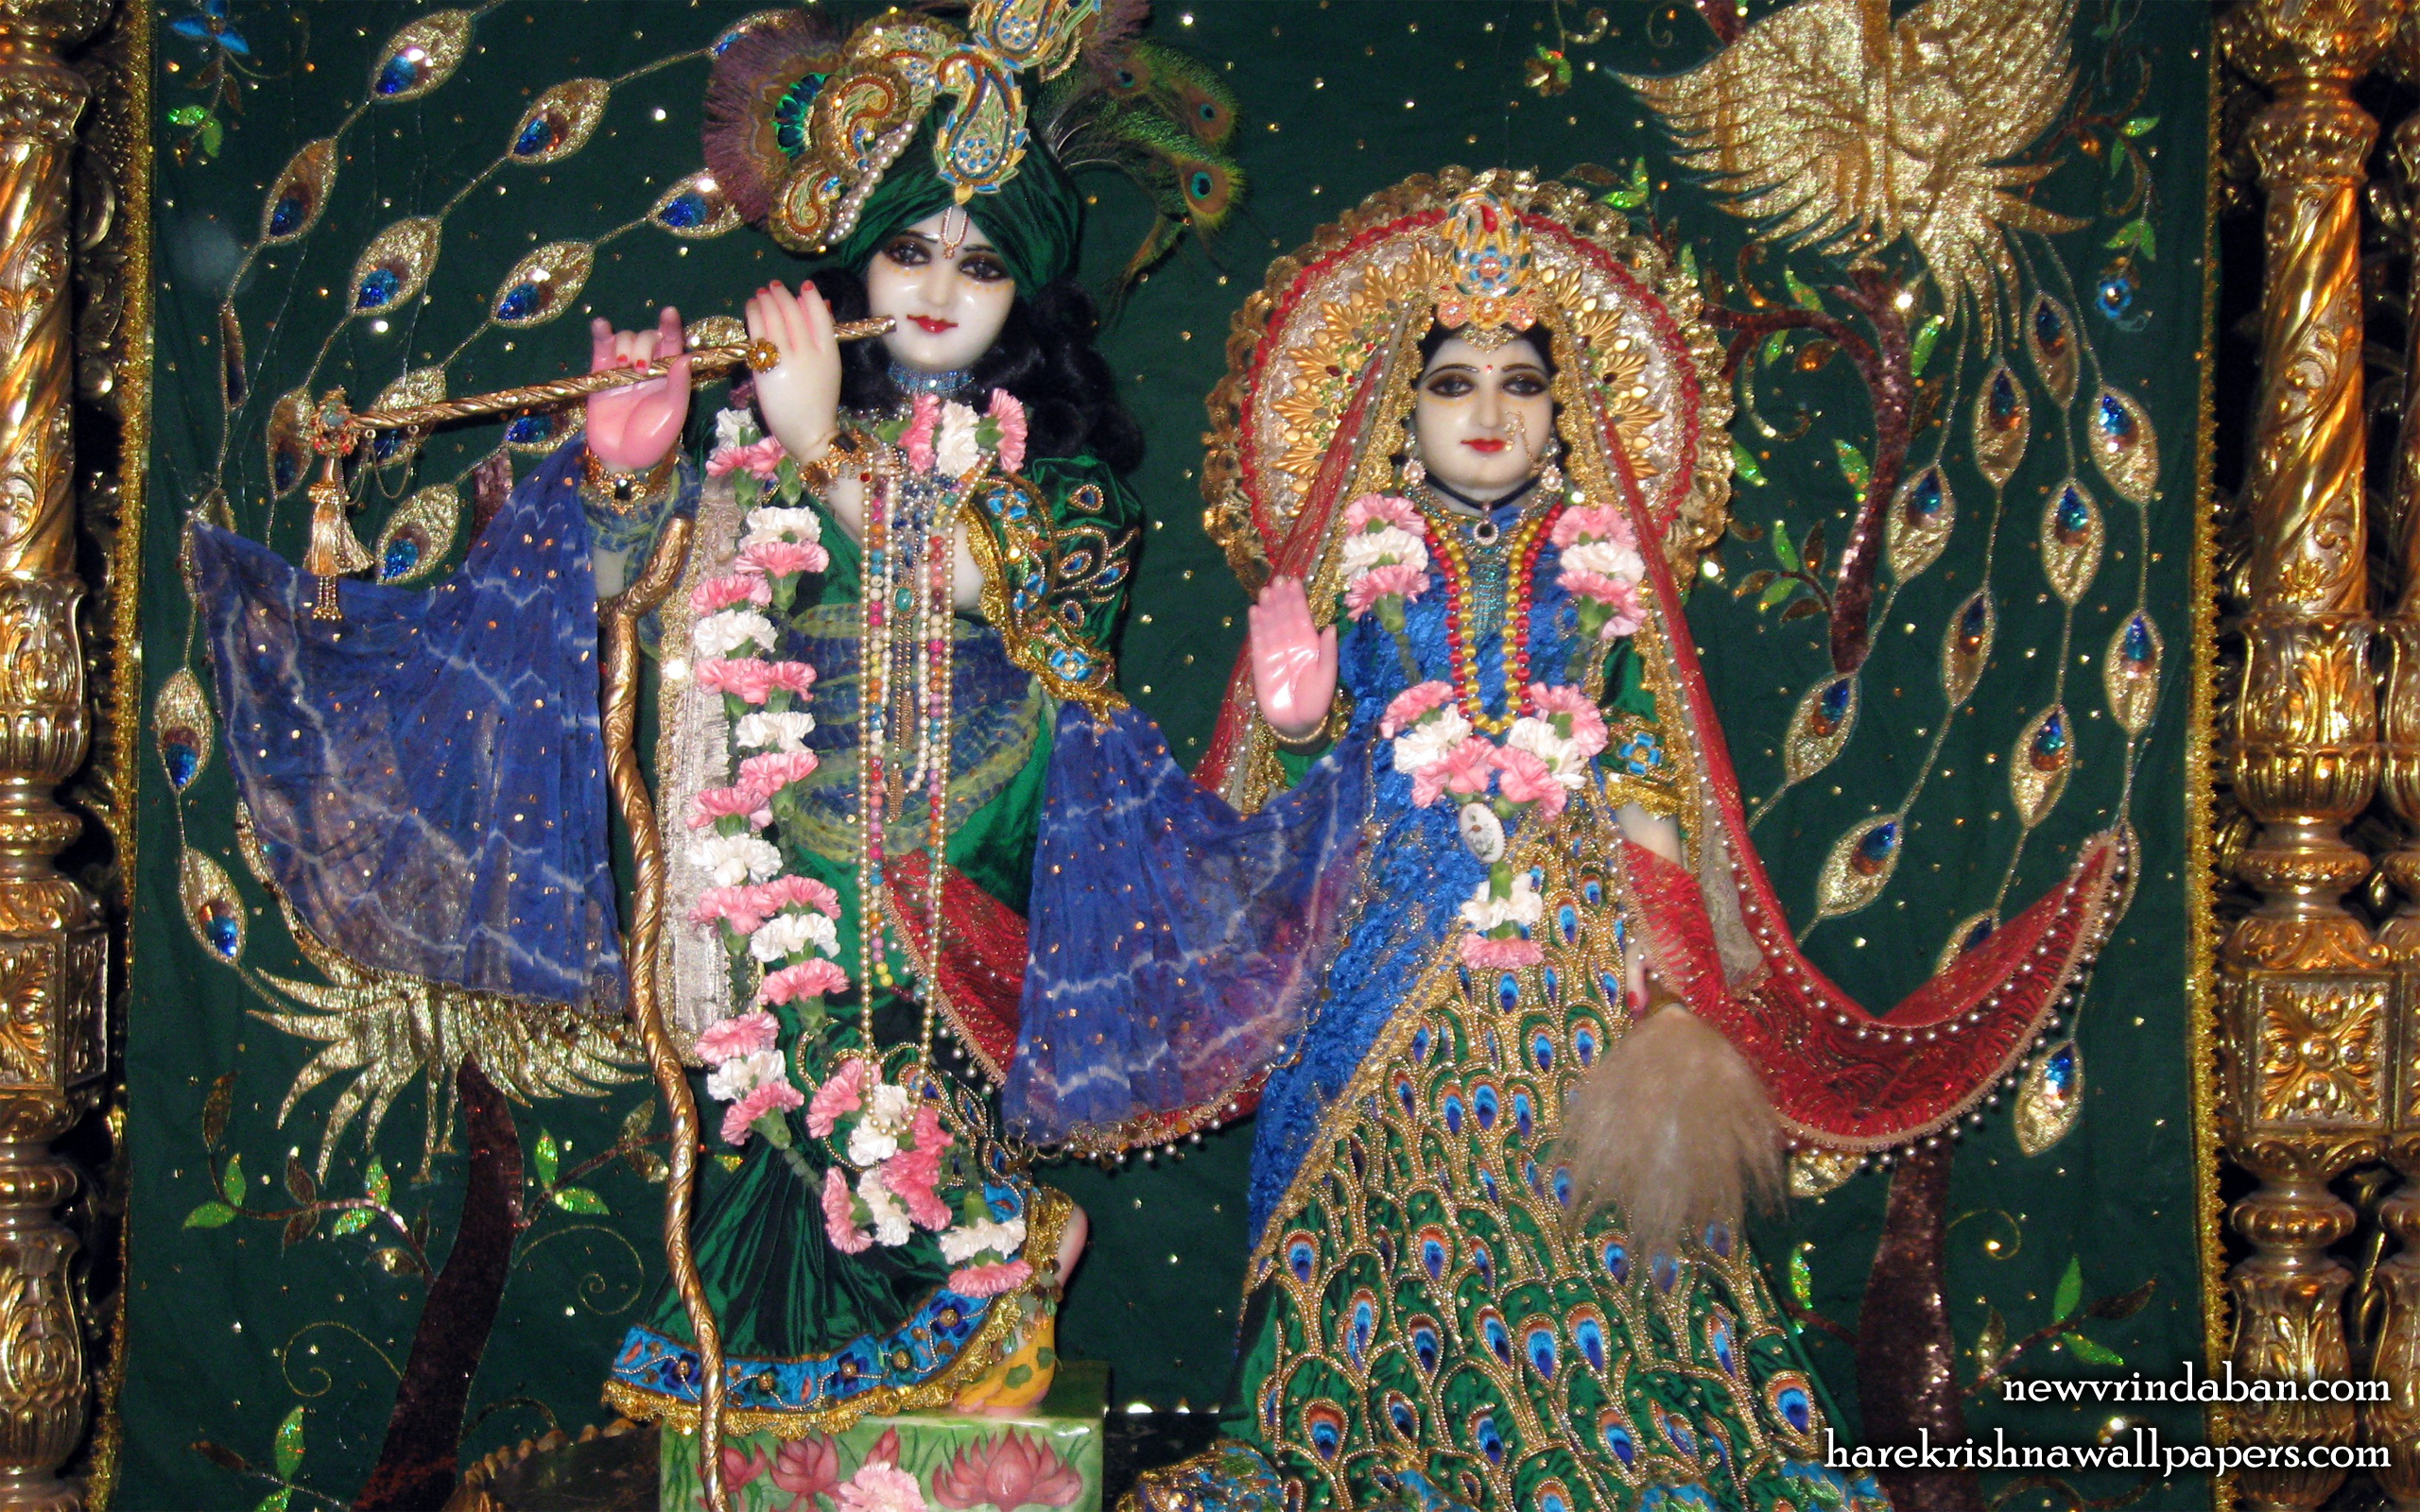 Sri Sri Radha Vrindavana Chandra Wallpaper (003) Size 2560x1600 Download